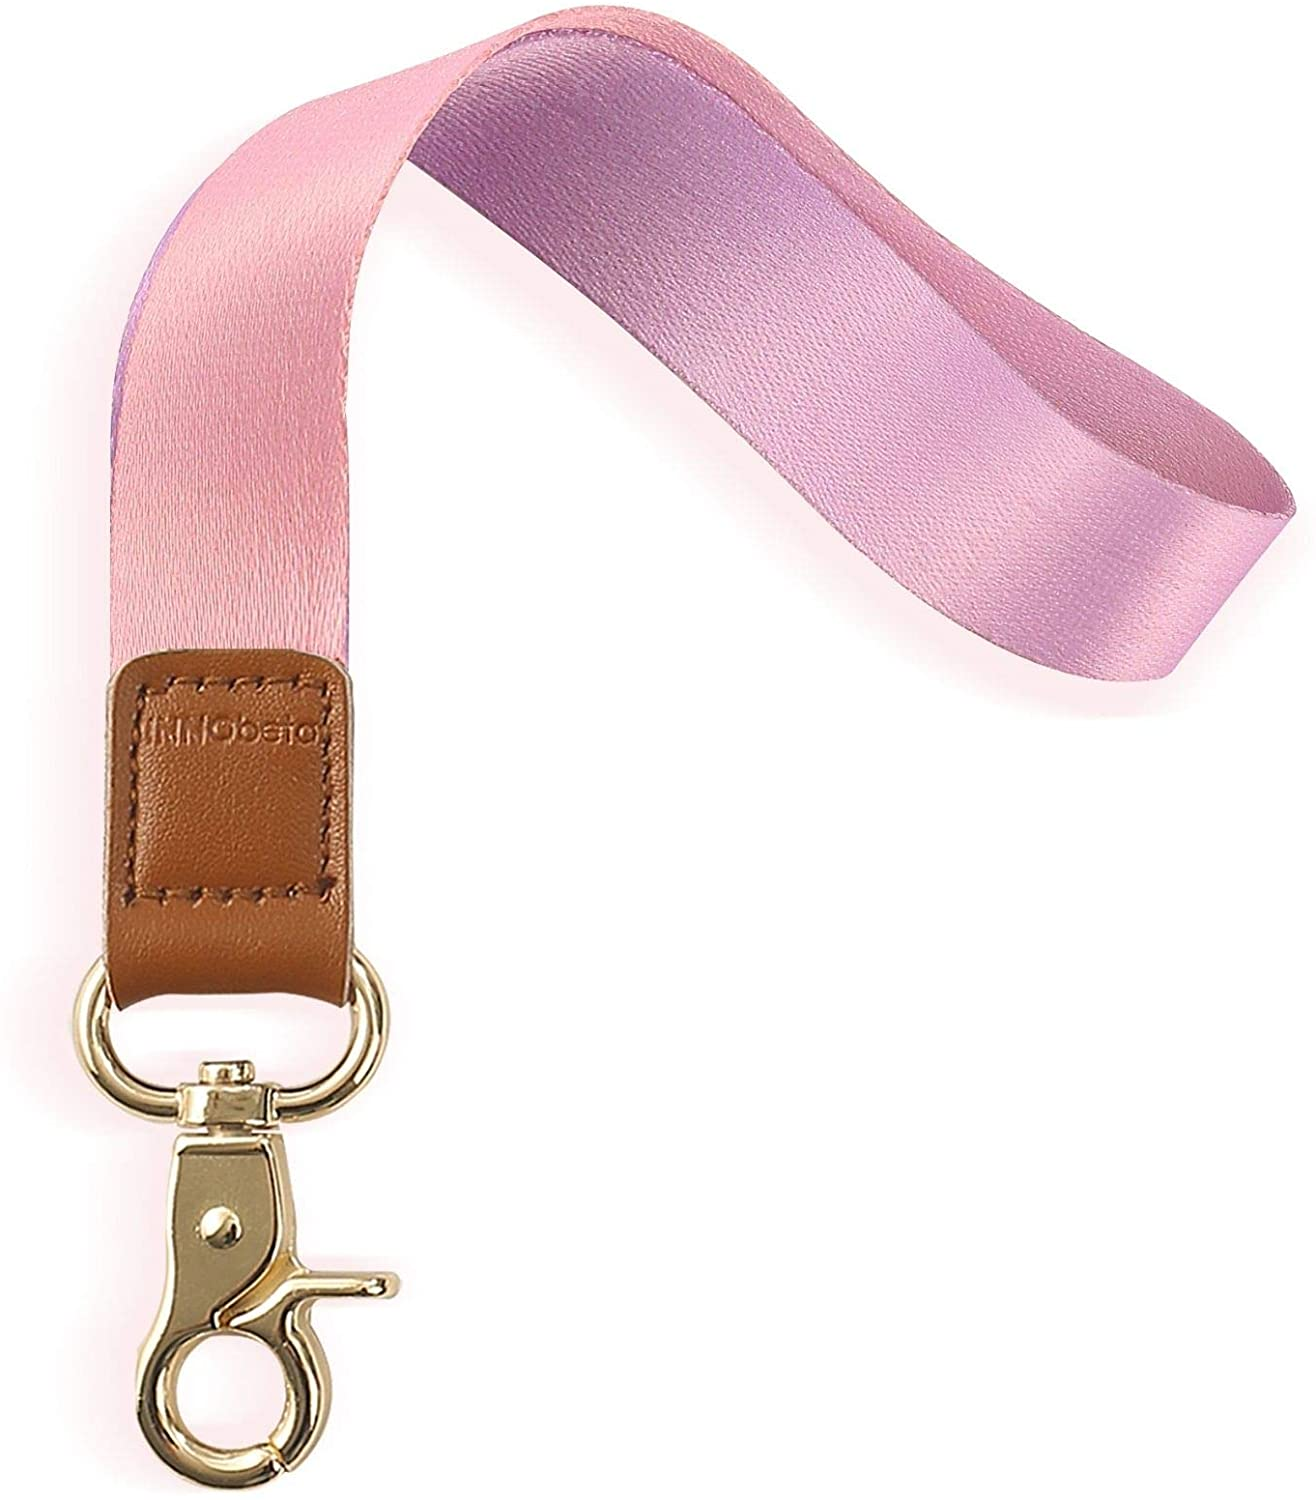 Wrist Lanyard for Women and Men, Key Lanyards for Phone Cases, Cute Keychain Lanyards with Metal Clip 2cmx16cm (Gradient Purple)